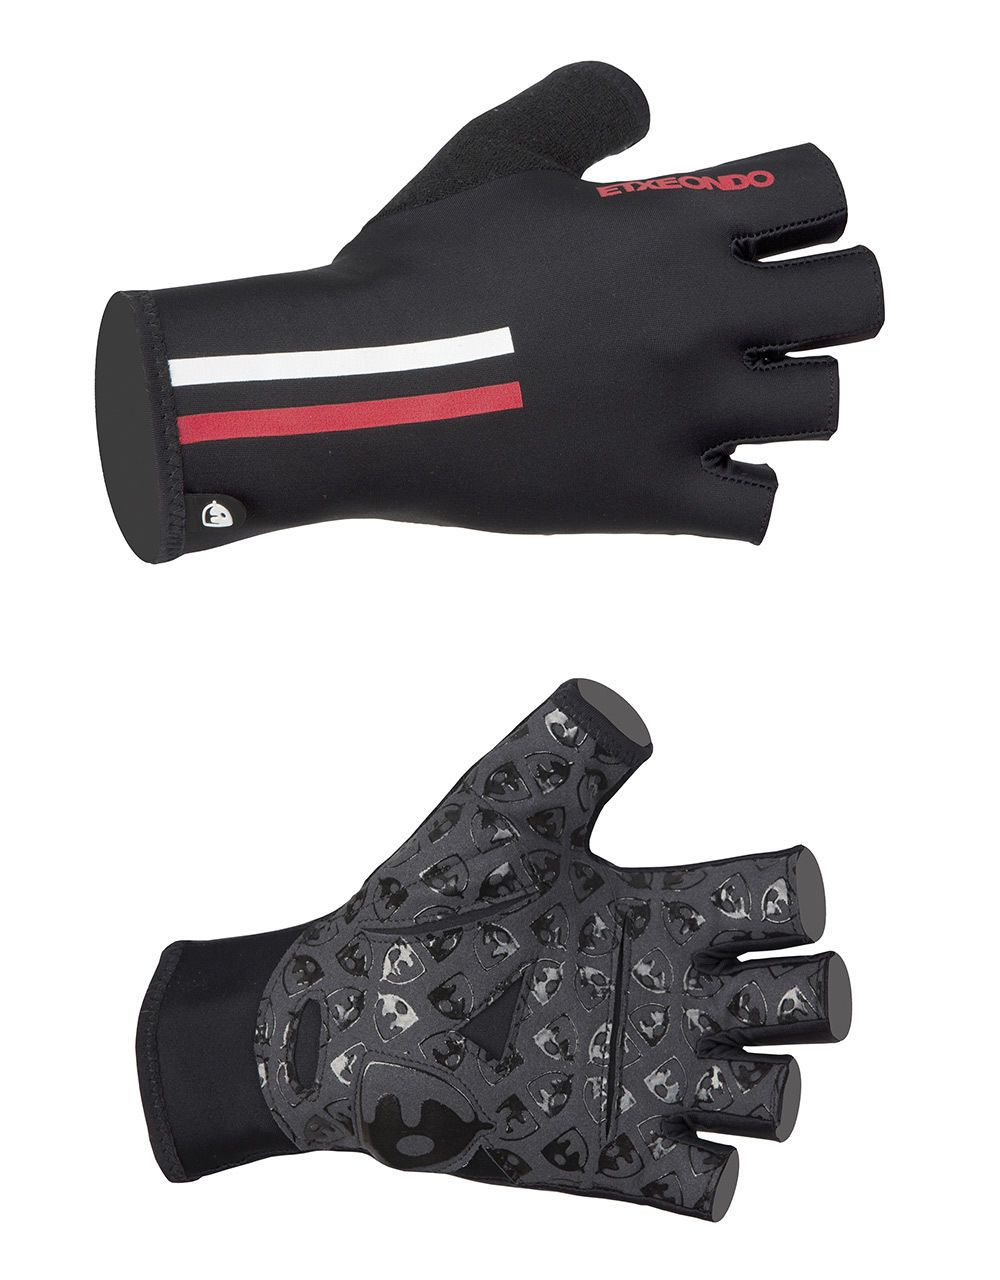 Gloves aero summer pullon cycling gloves in black by